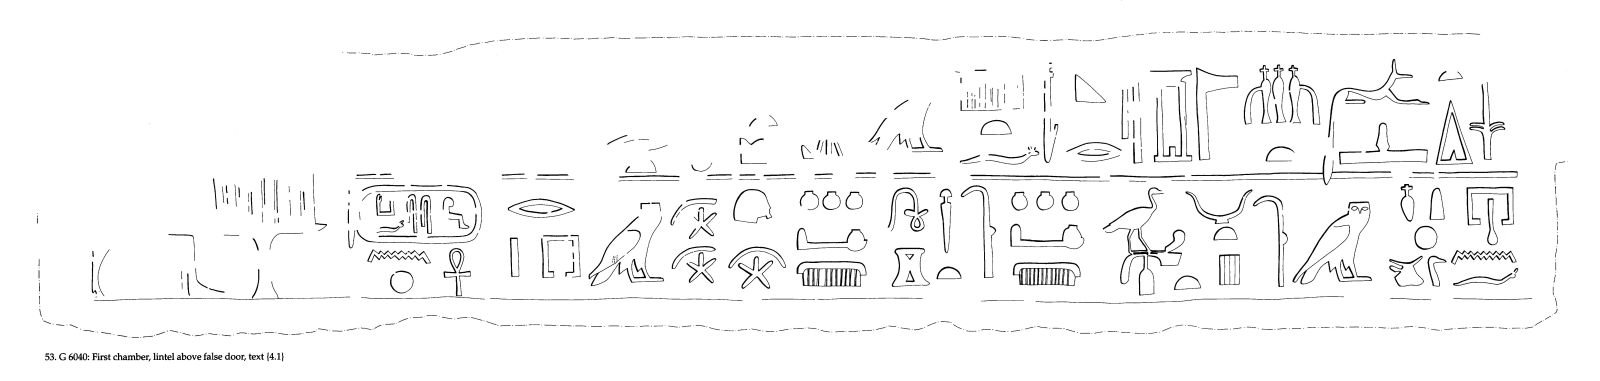 Drawings: G 6040: relief from first chamber, false door lintel